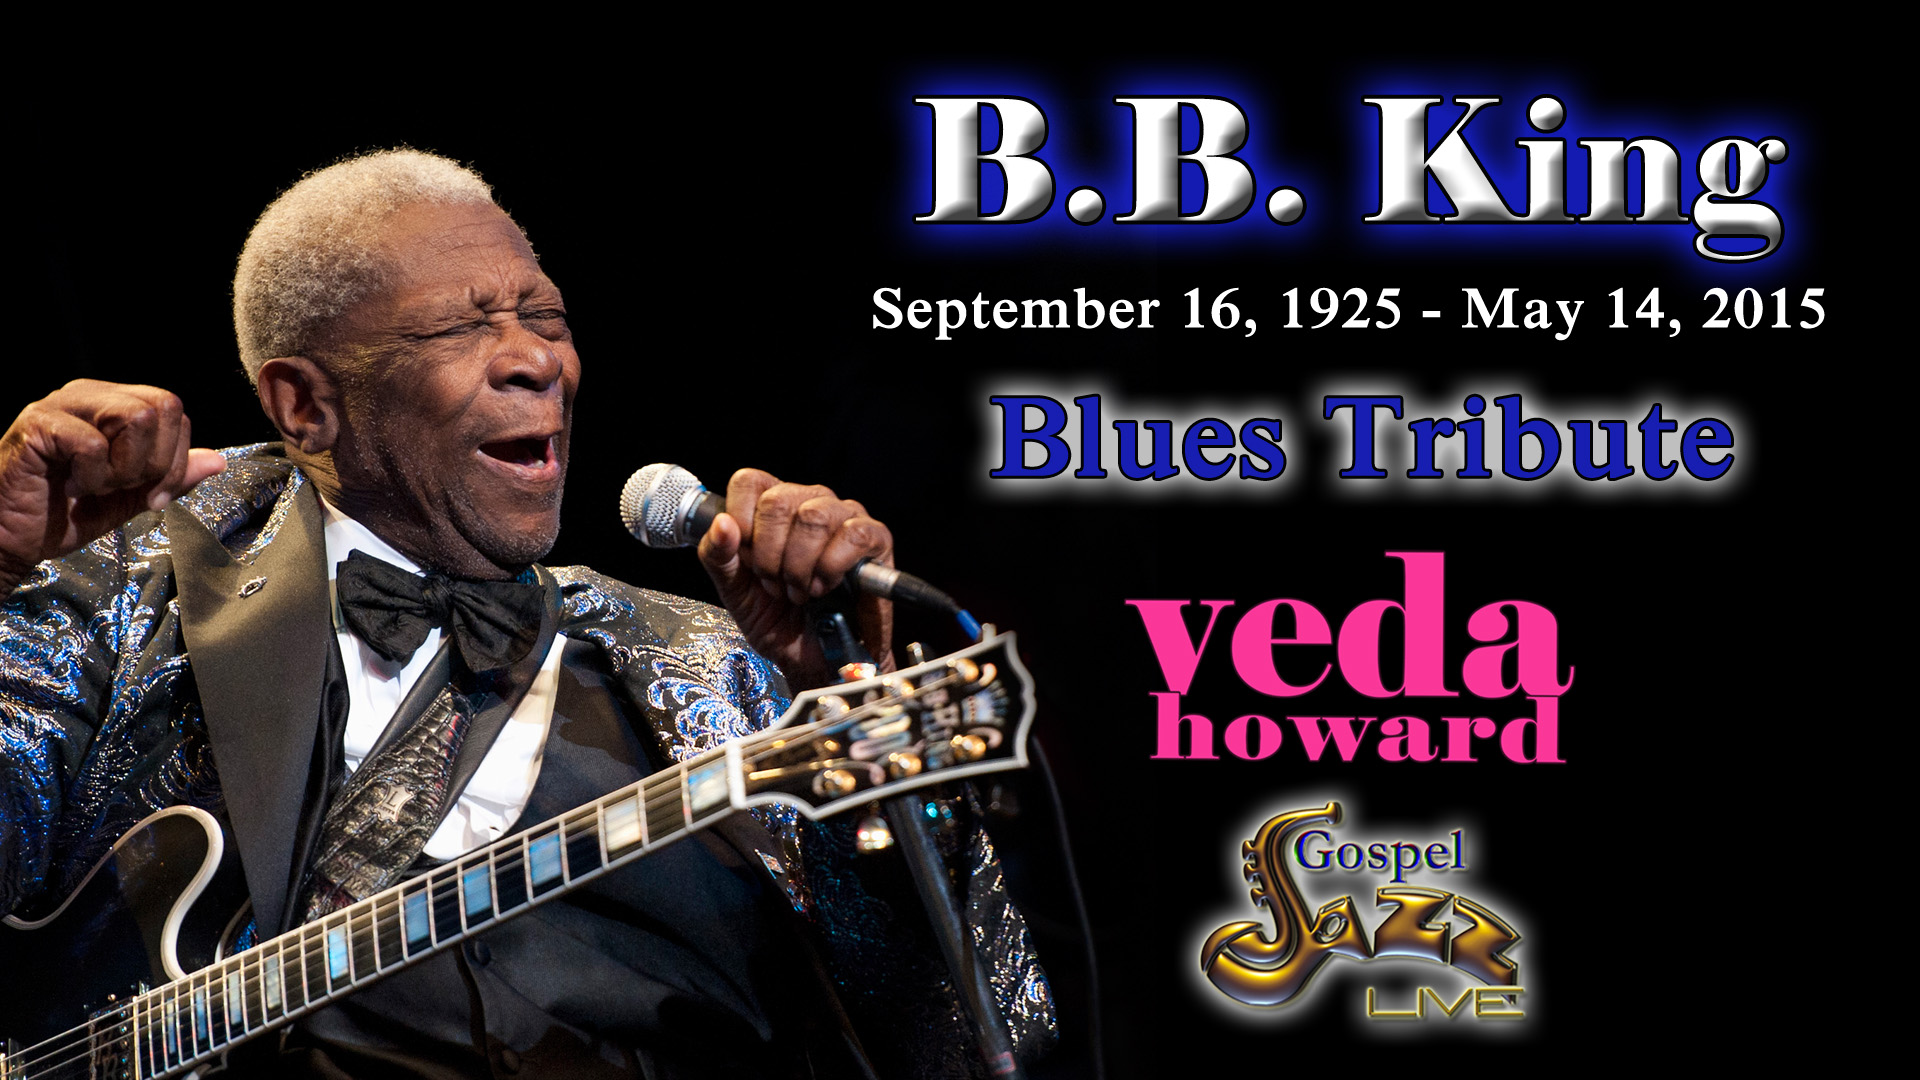 BB King insert  image